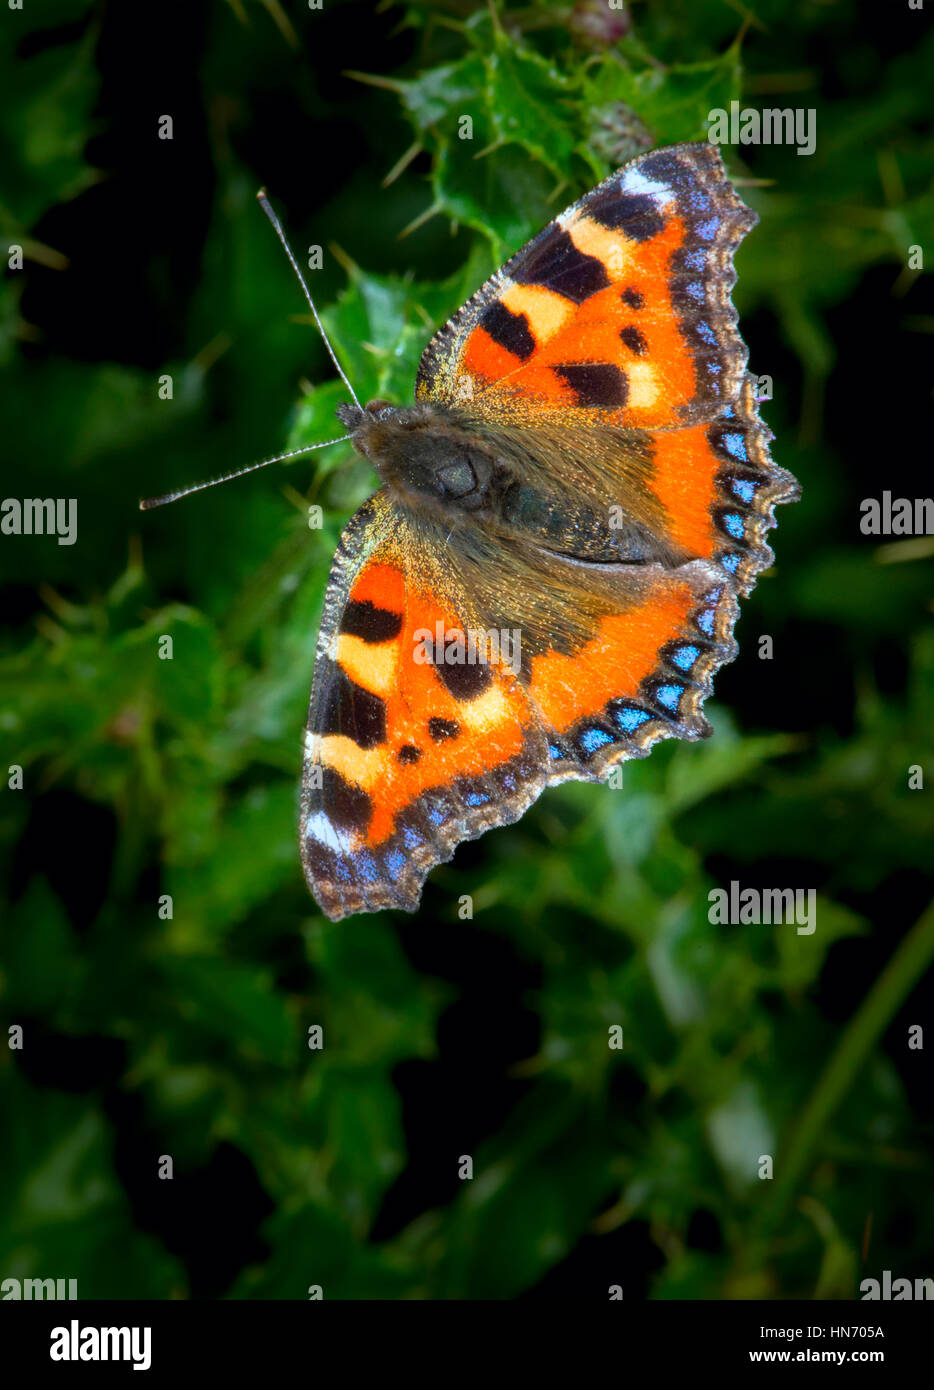 Small Tortoiseshell Butterfly(Aglais urticae) on thistle. - Stock Image